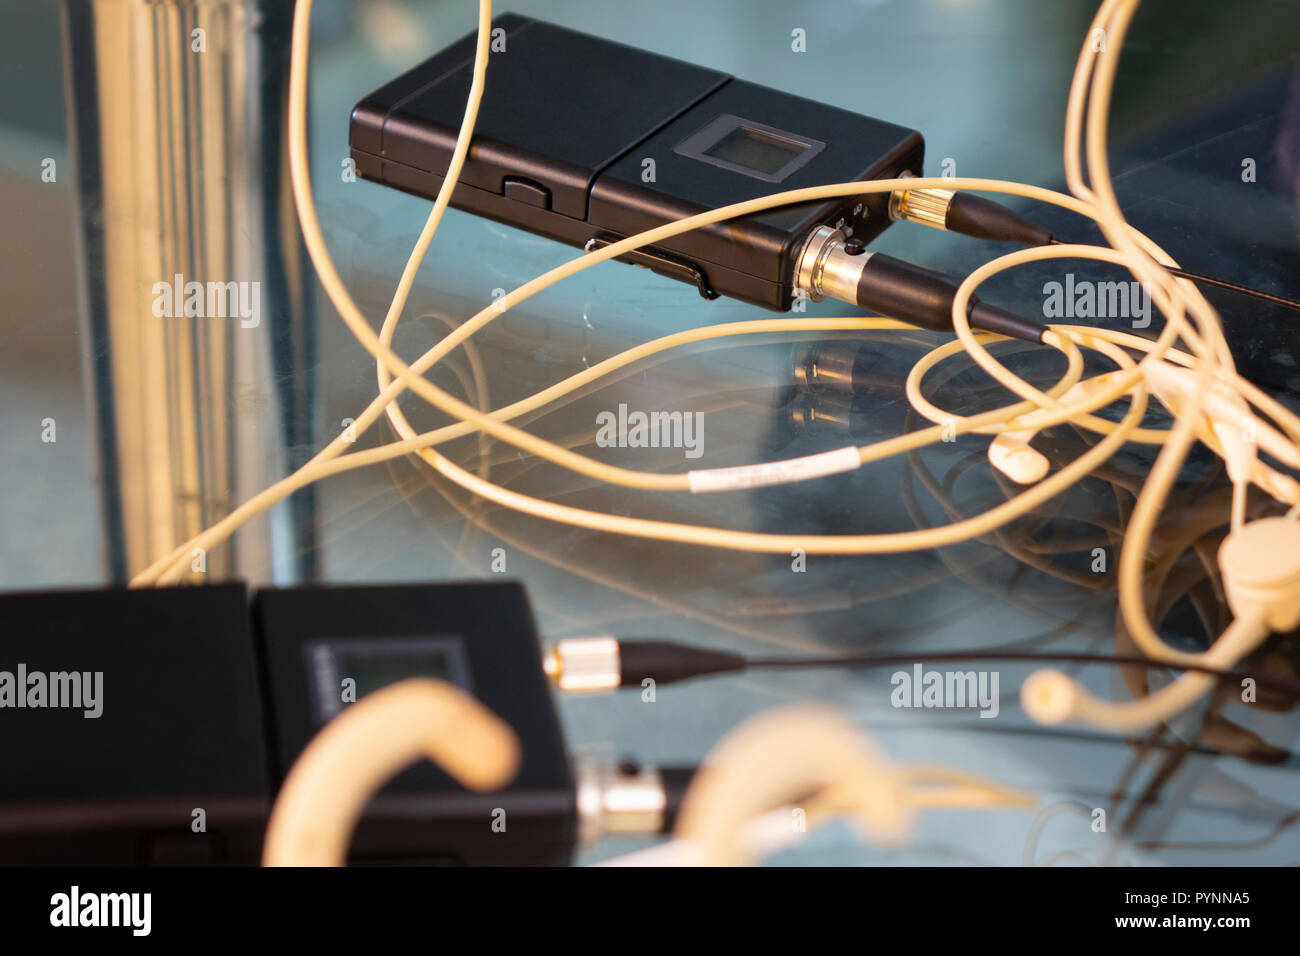 Head set wireless microphones transmitter and two wireless microphone reciever on glass table in tv studio - Stock Image